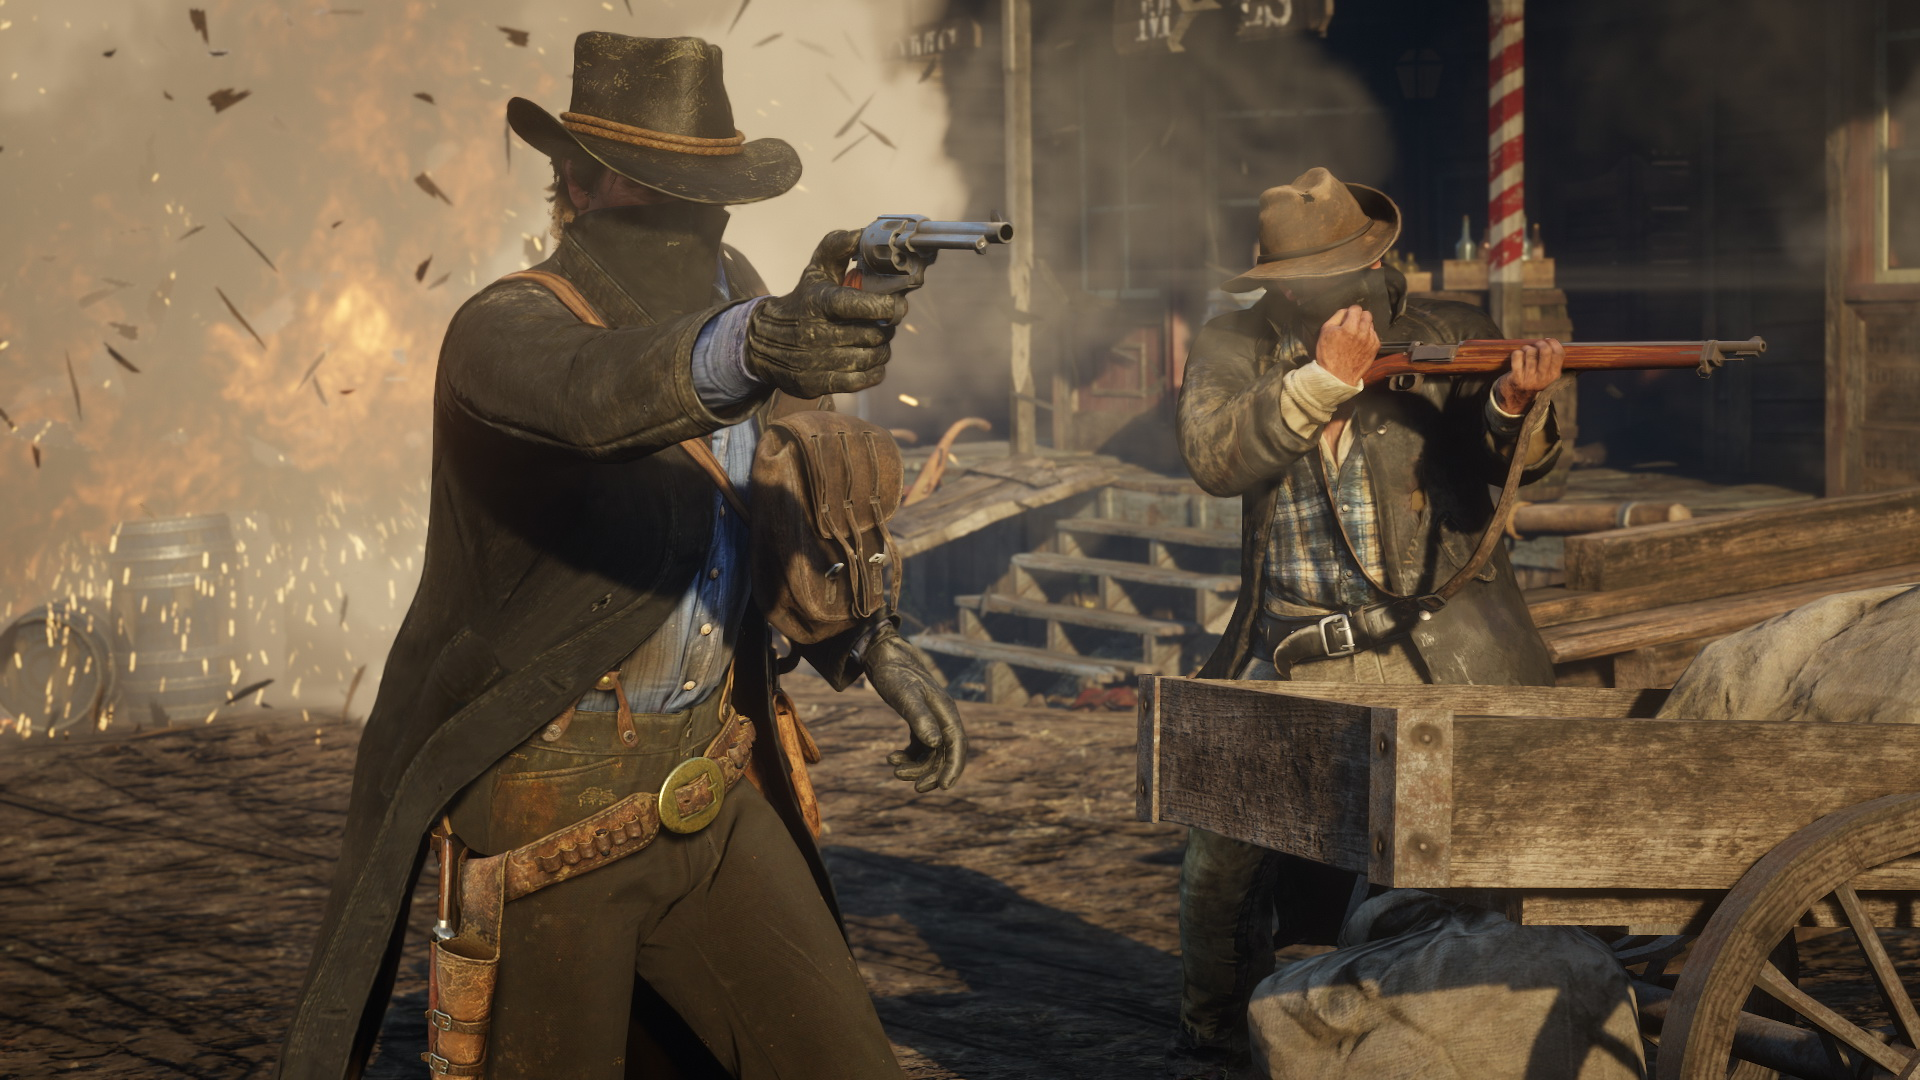 Red Dead Online Beta Not Working For Xbox One Players, Rockstar Confirms